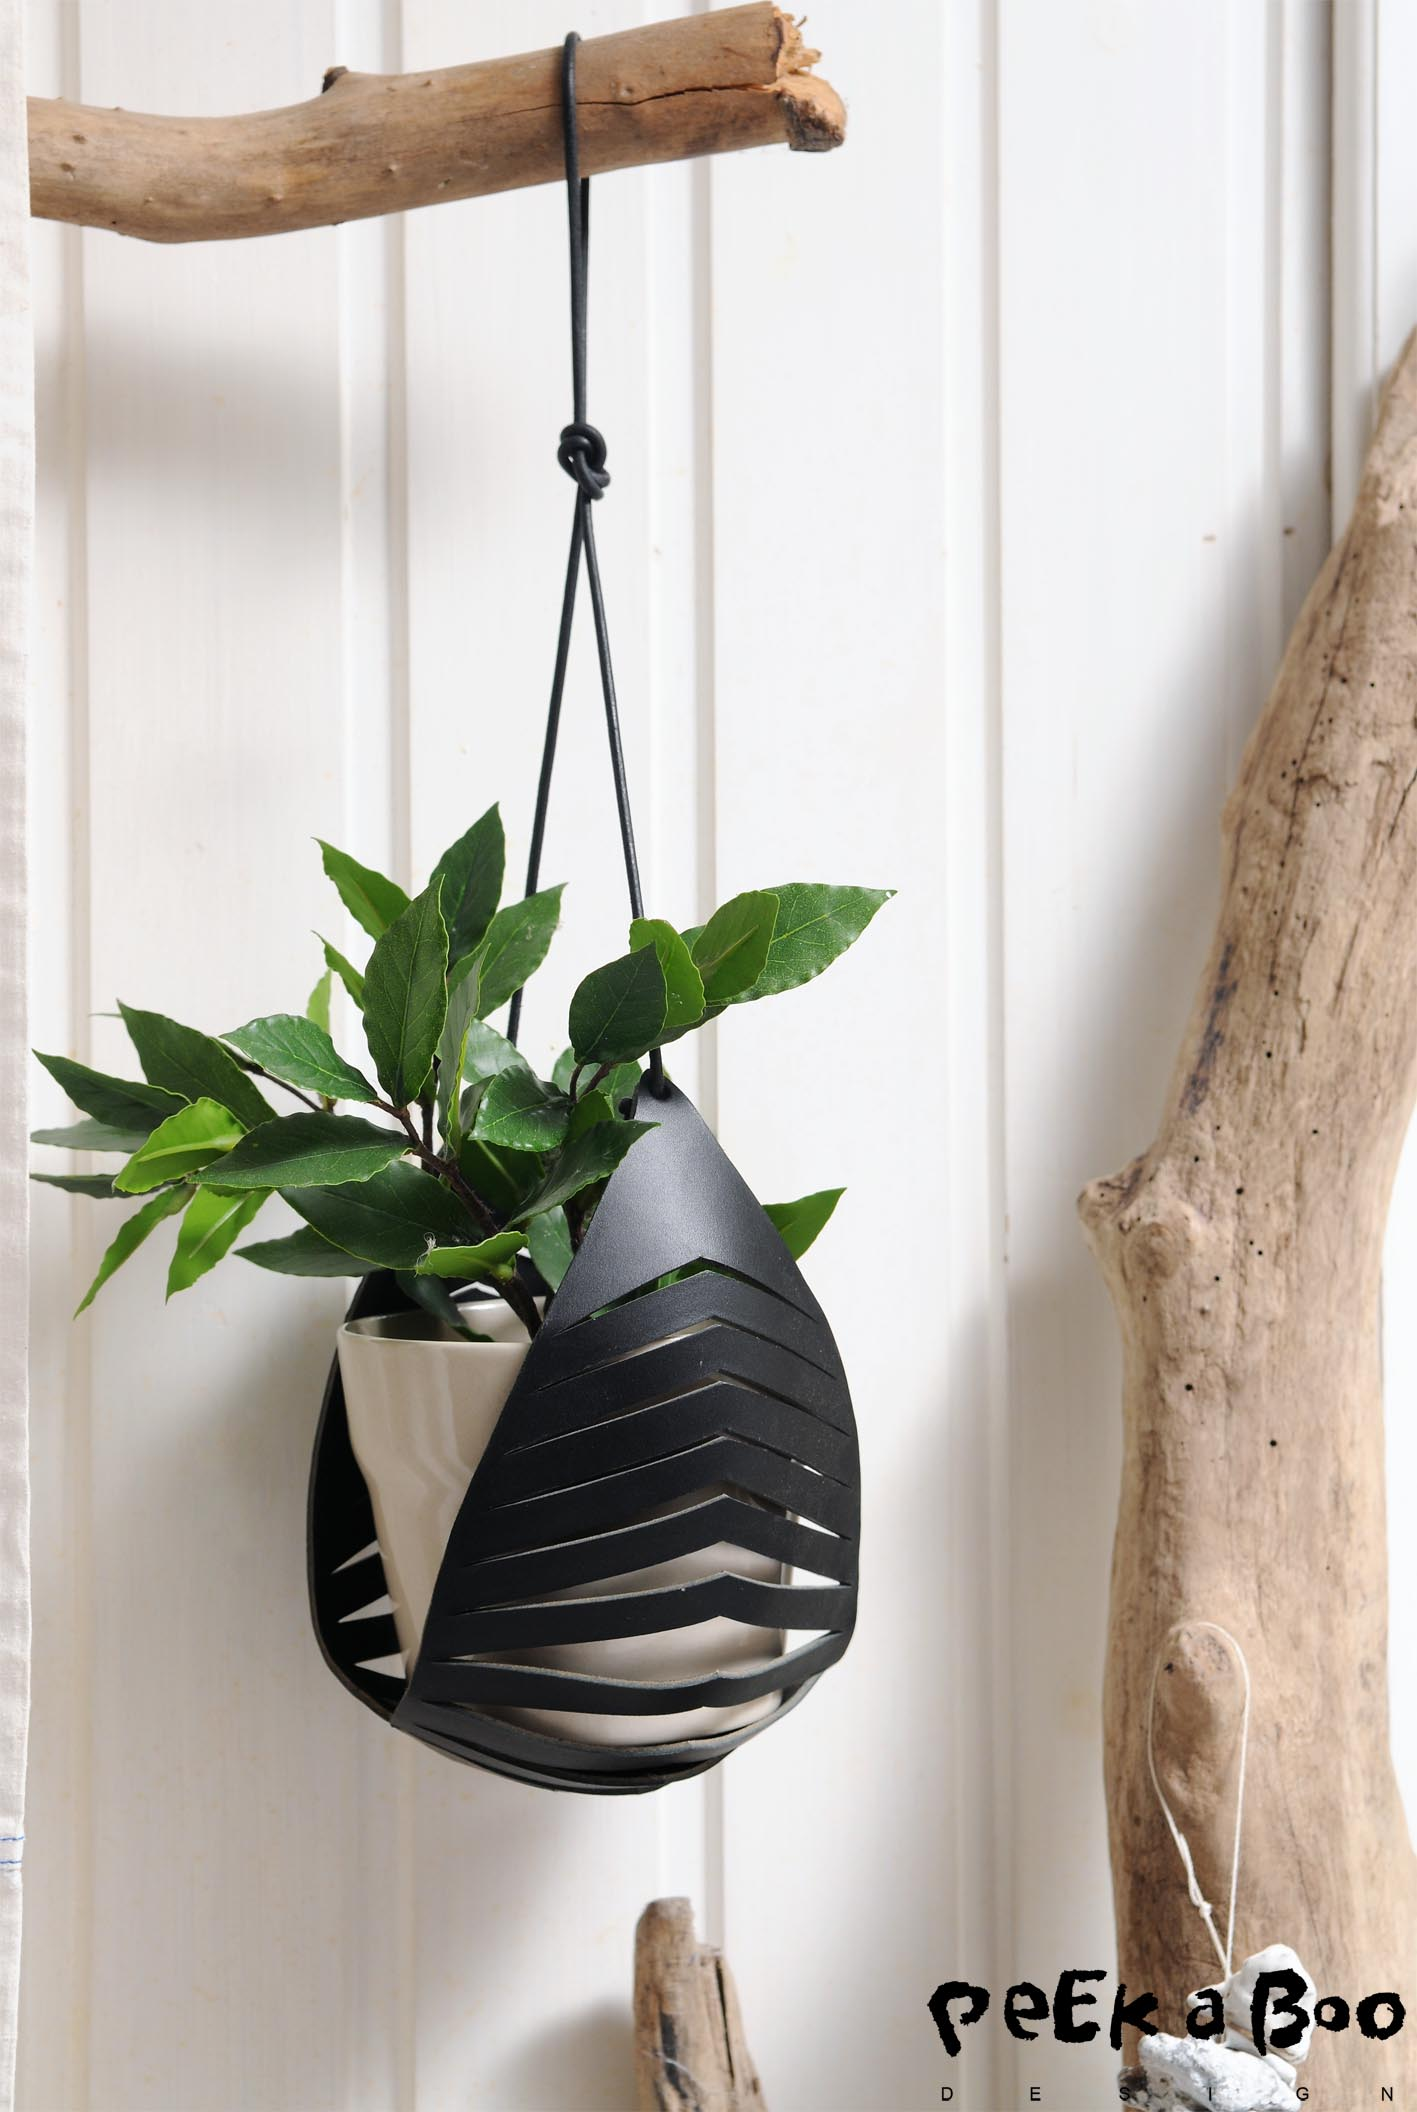 The leatherpiece for hangingpots are perfect for the urban green living trend.